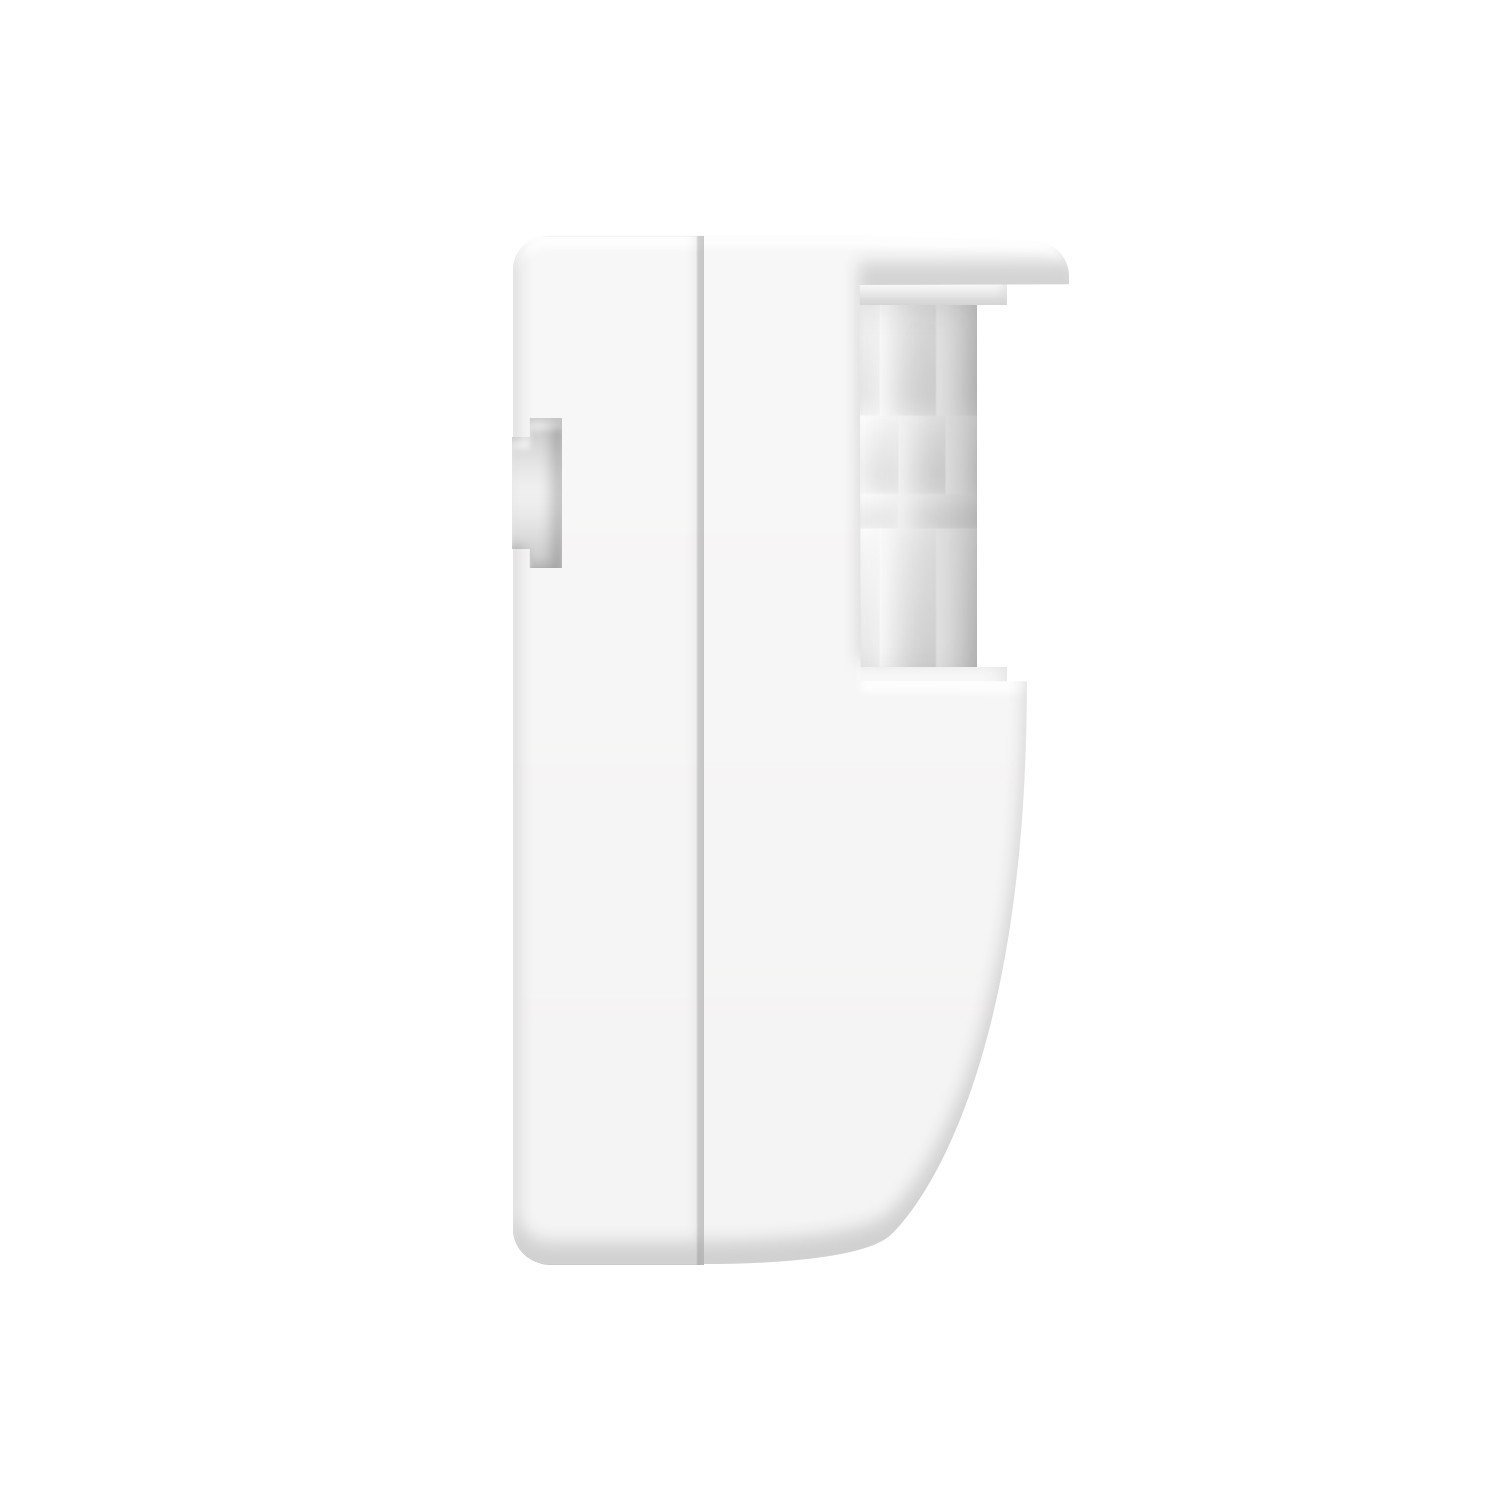 Way External Switch For Micro And Dimmers Insteon 2842 222 Wireless Motion Sensor Home Improvement